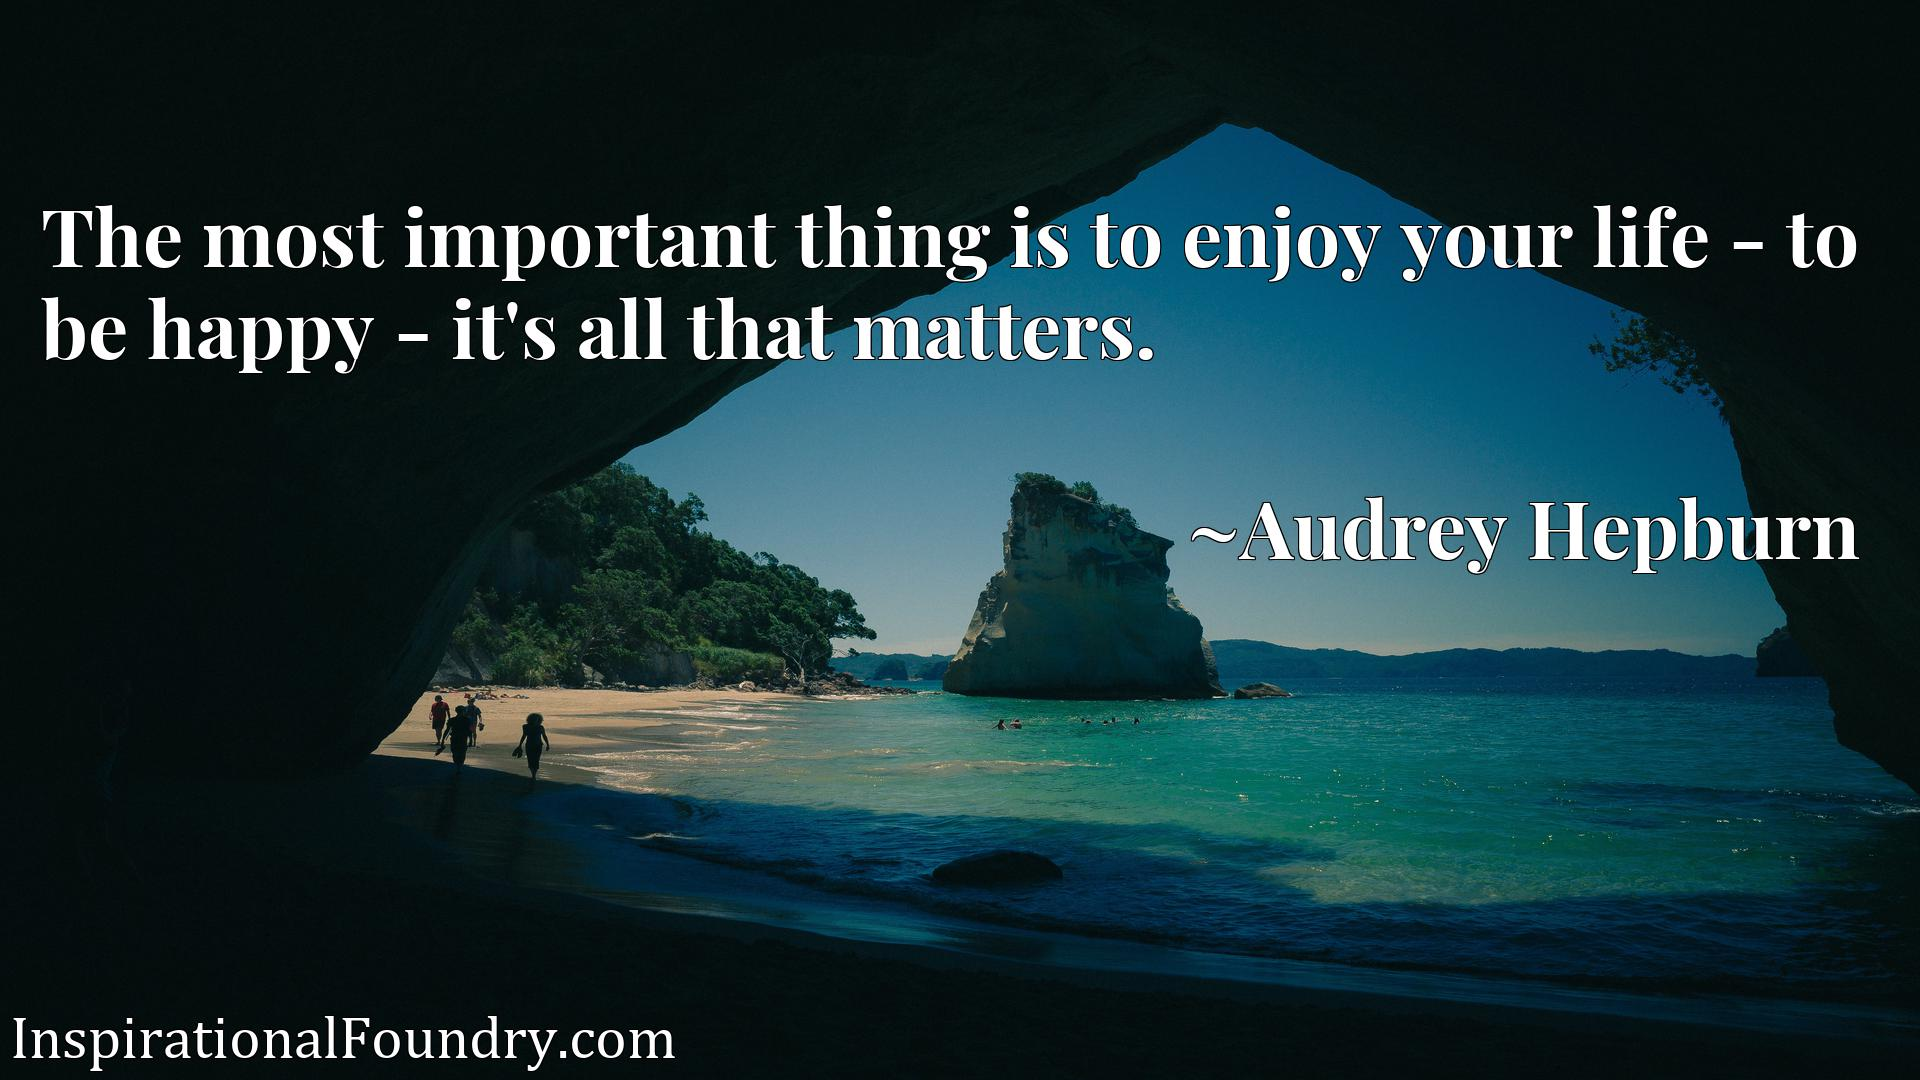 Quote Picture :The most important thing is to enjoy your life - to be happy - it's all that matters.